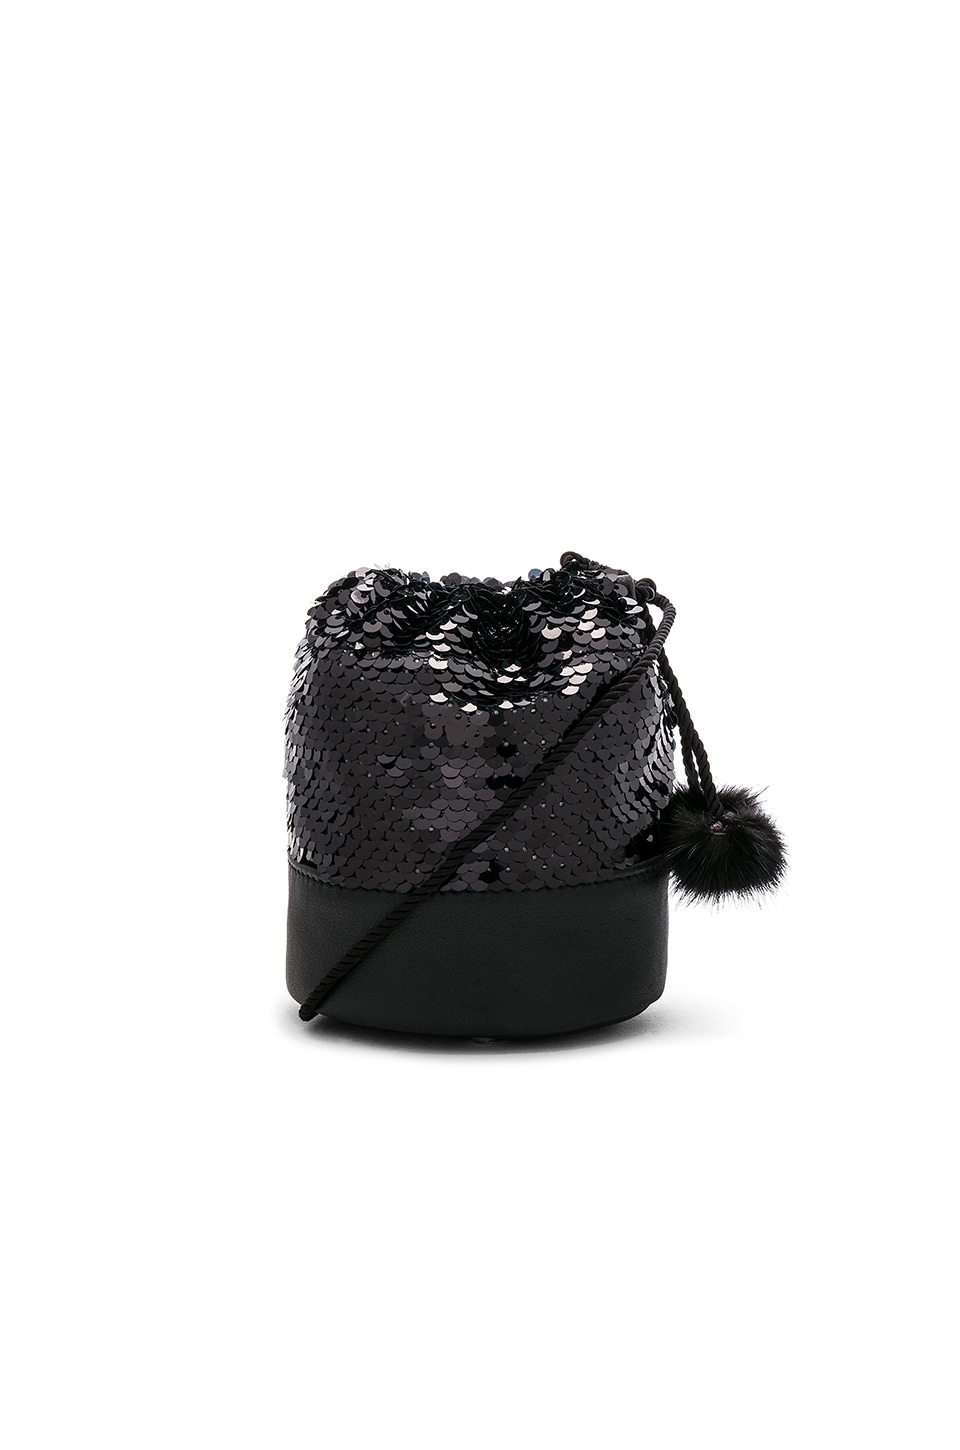 LPA Micro Nina Bag in Black Sequin